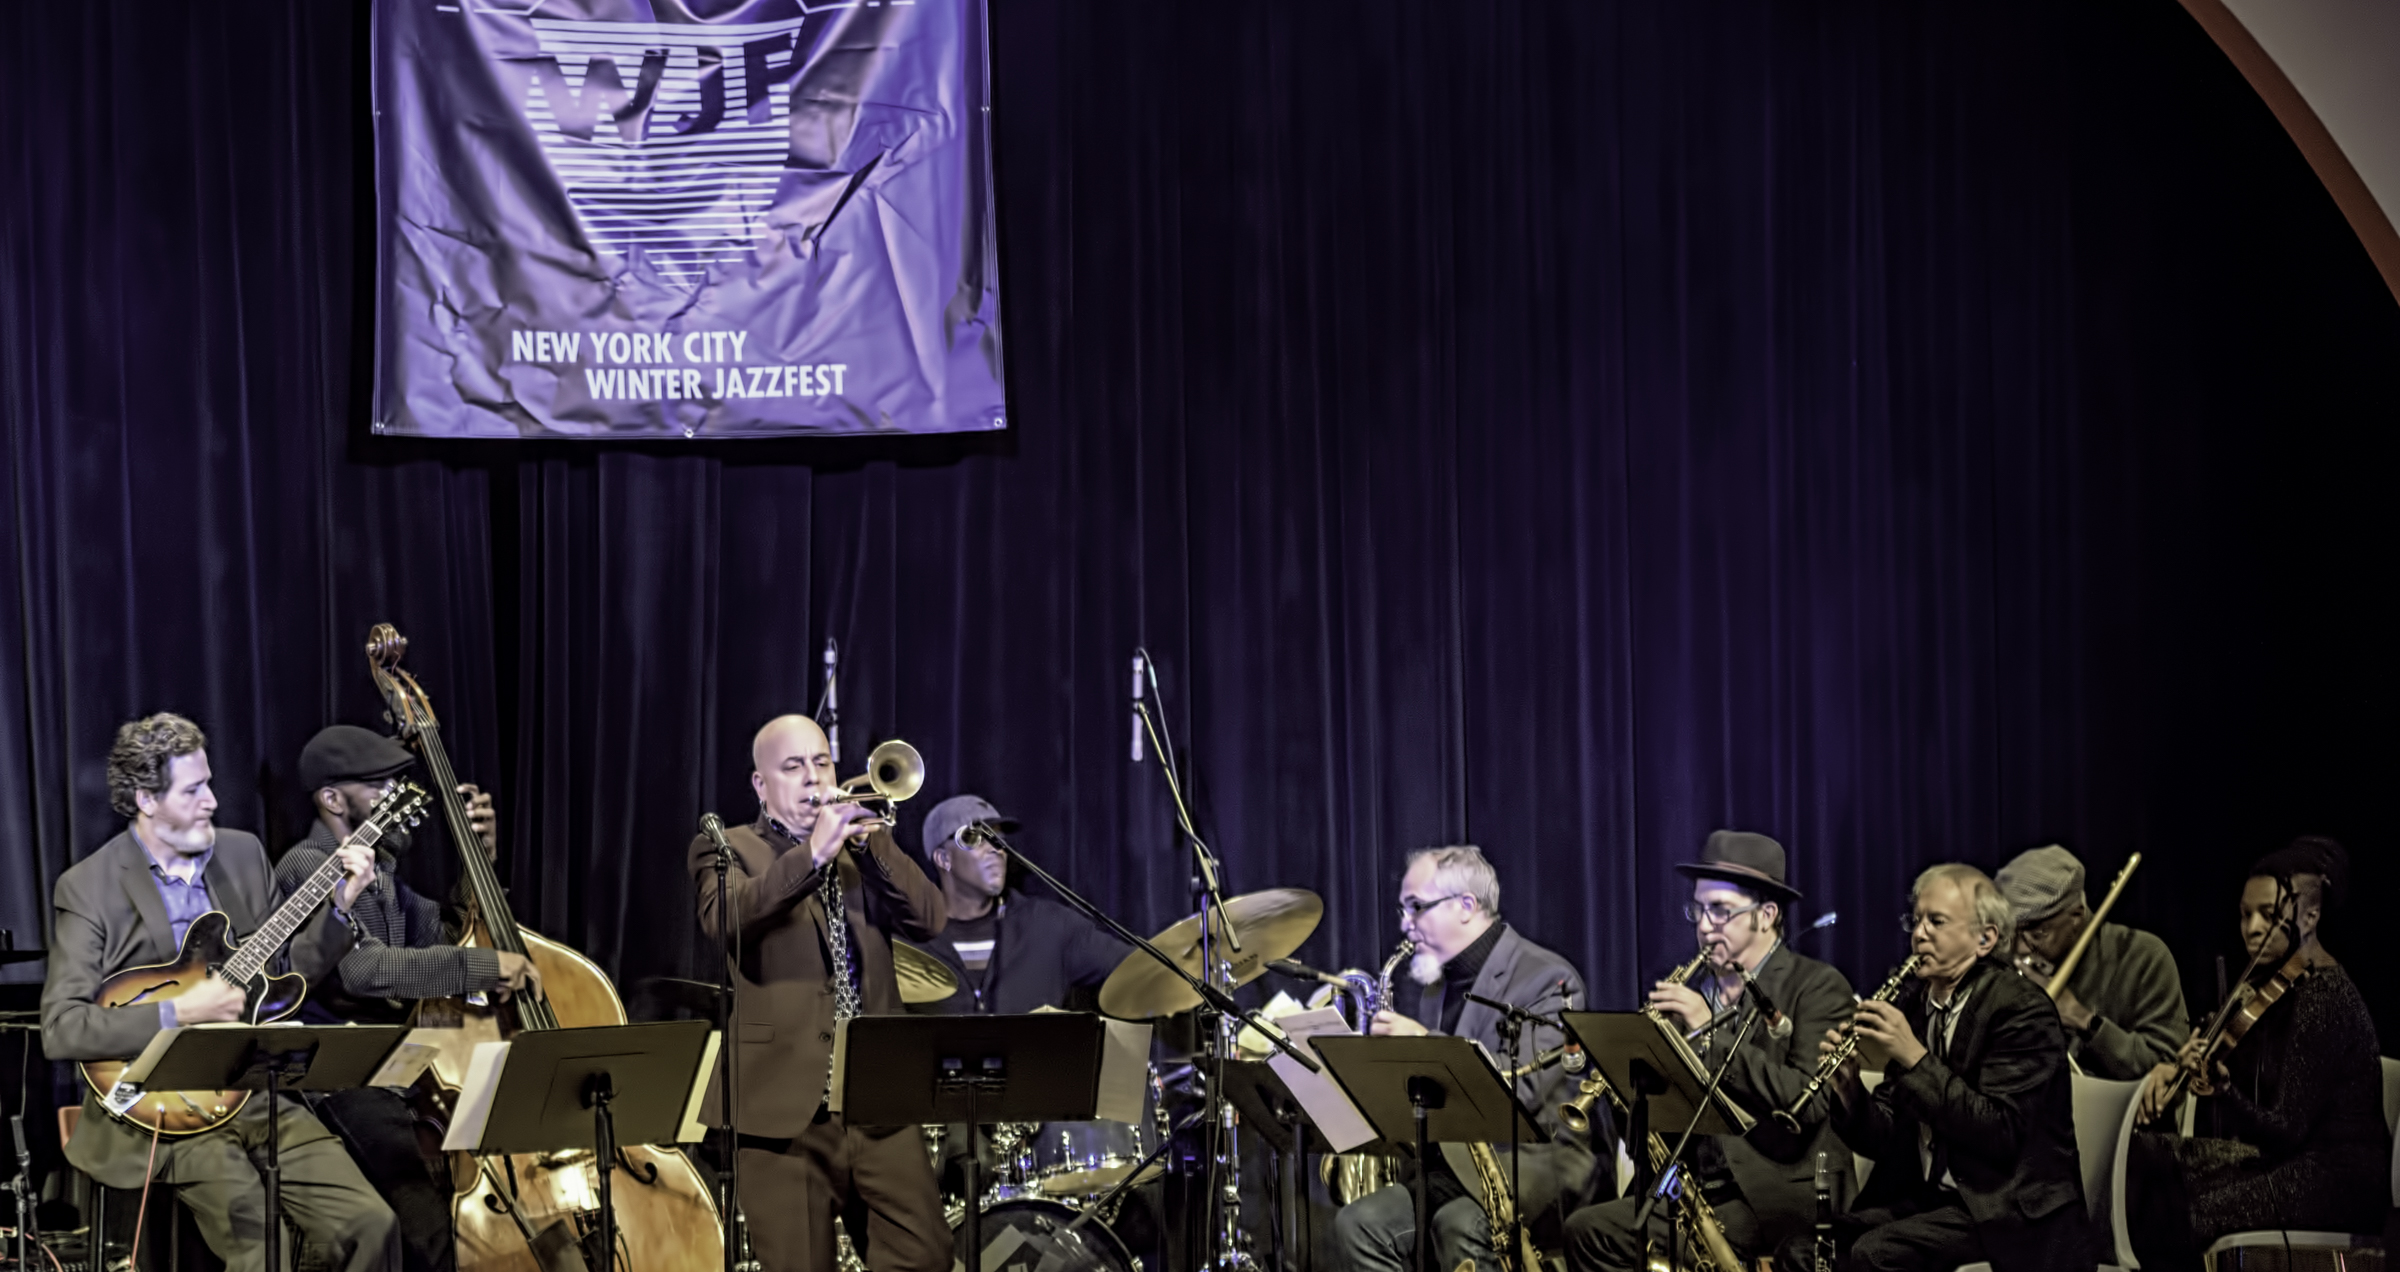 Matt Munisteri, Brad Jones, Steven Bernstein, Donald Edwards, Erik Lawrence, Peter Apfelbaum, Doug Wieselman, Curtis Fowles And Mazz Swift With Butler, Bernstein And The Hot 9 At The Nyc Winter Jazzfest 2016